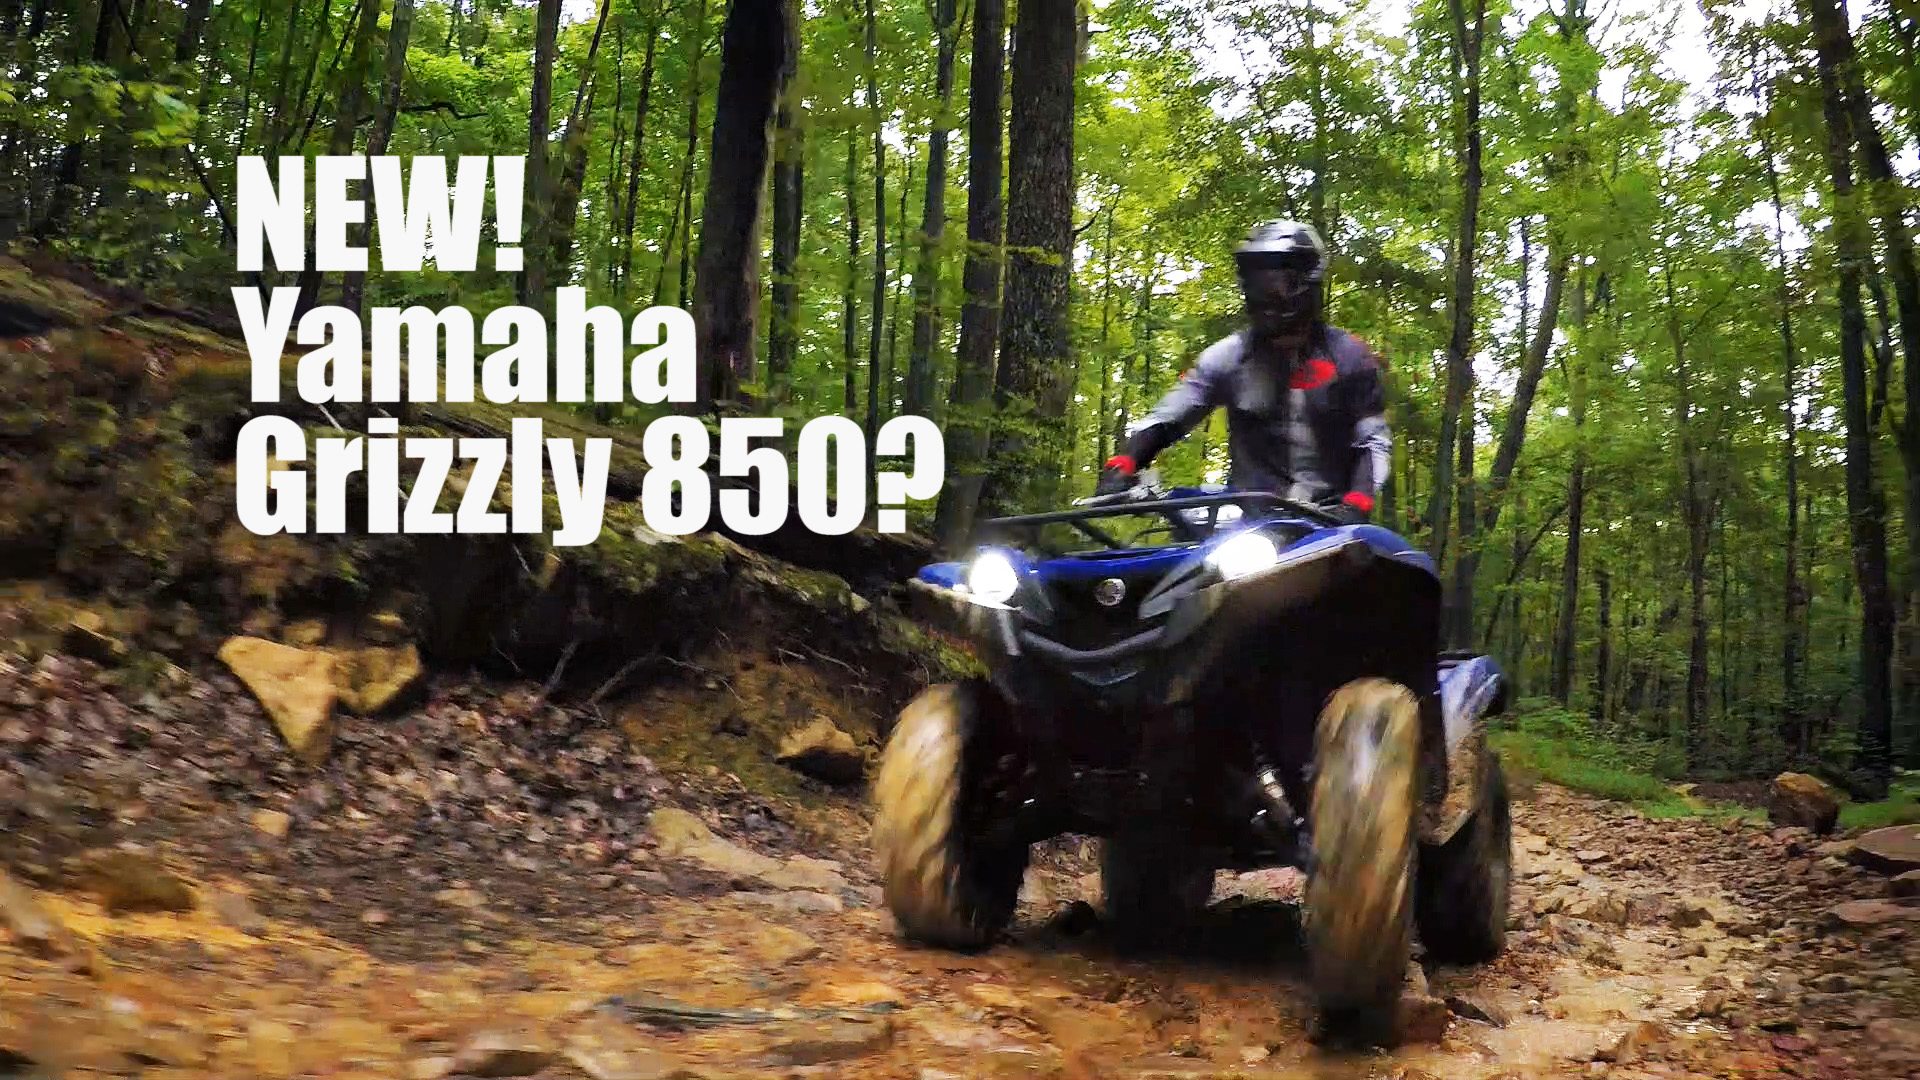 New Yamaha Grizzly 850